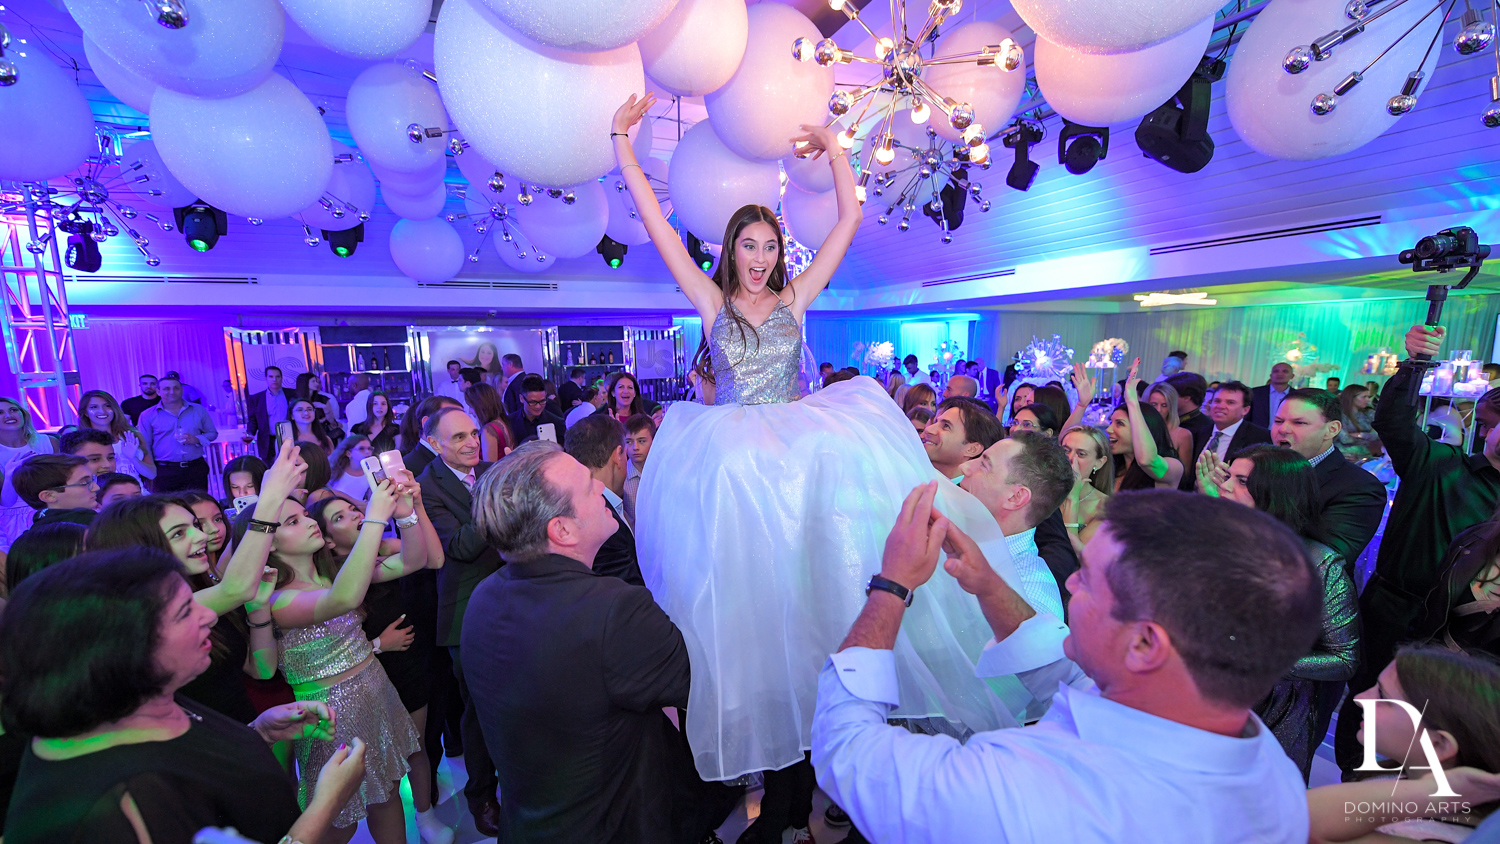 balloon hora at Trendy Decor Bat Mitzvah at St Andrews Country Club by Domino Arts Photography